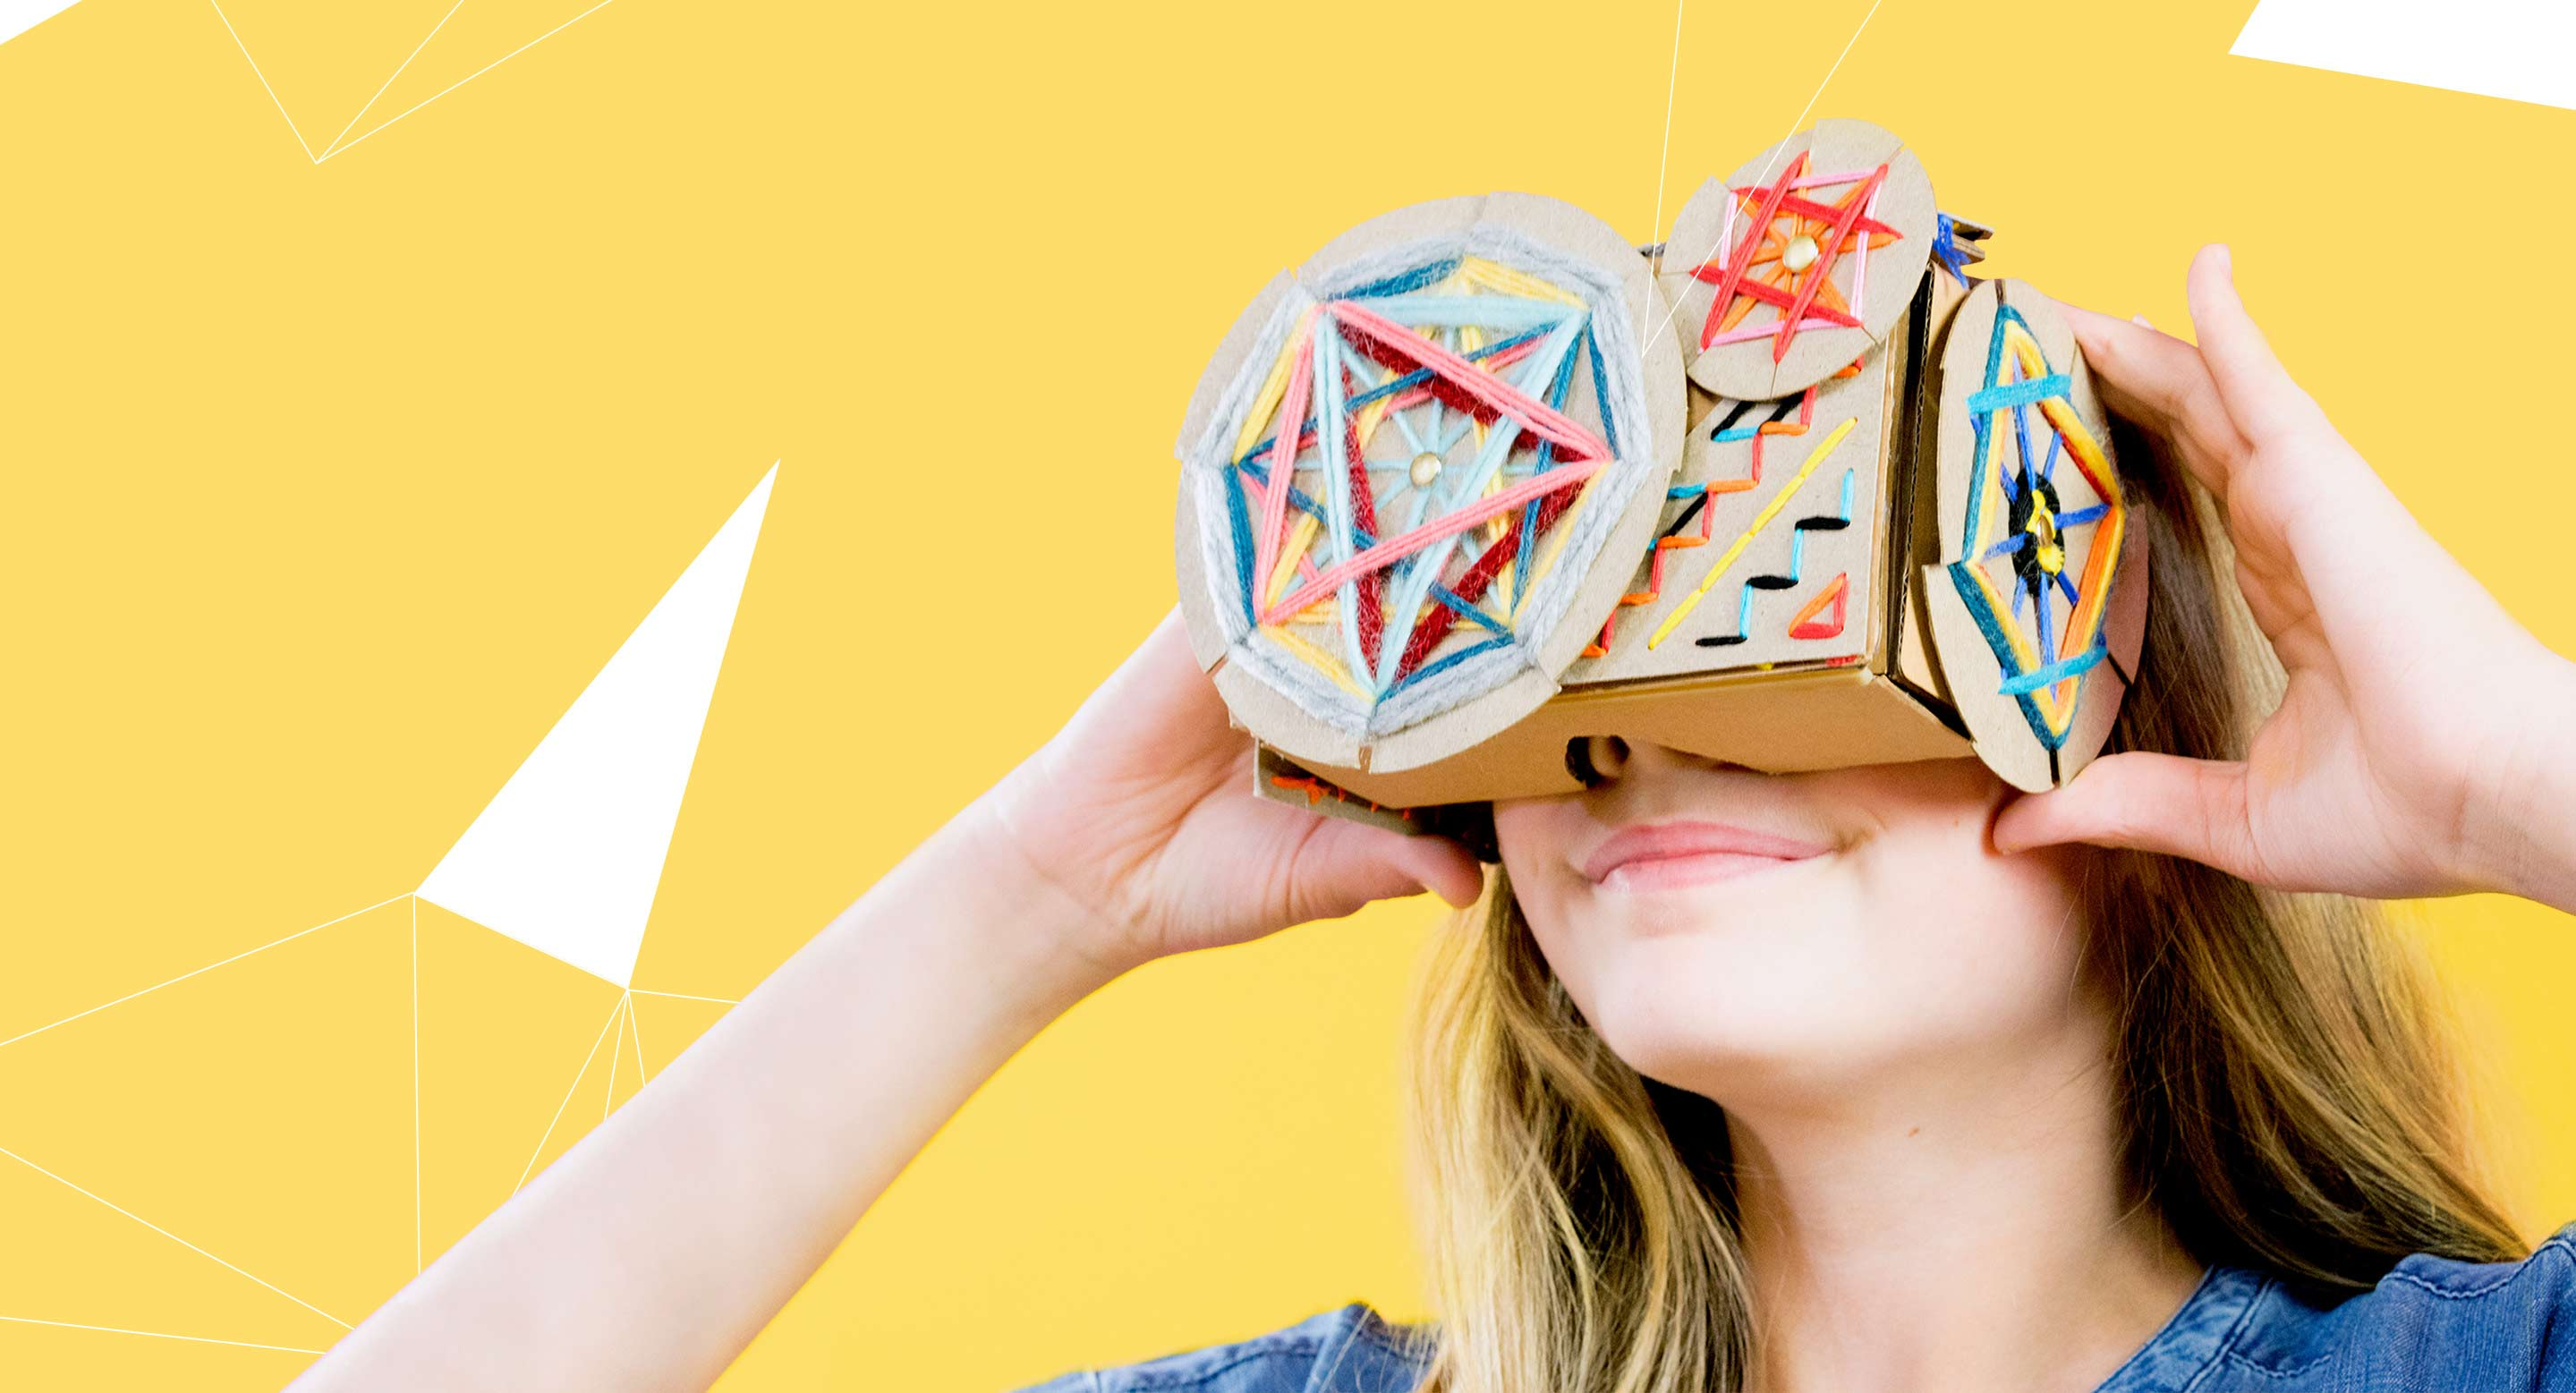 Virtual Reality Cardboard Viewer